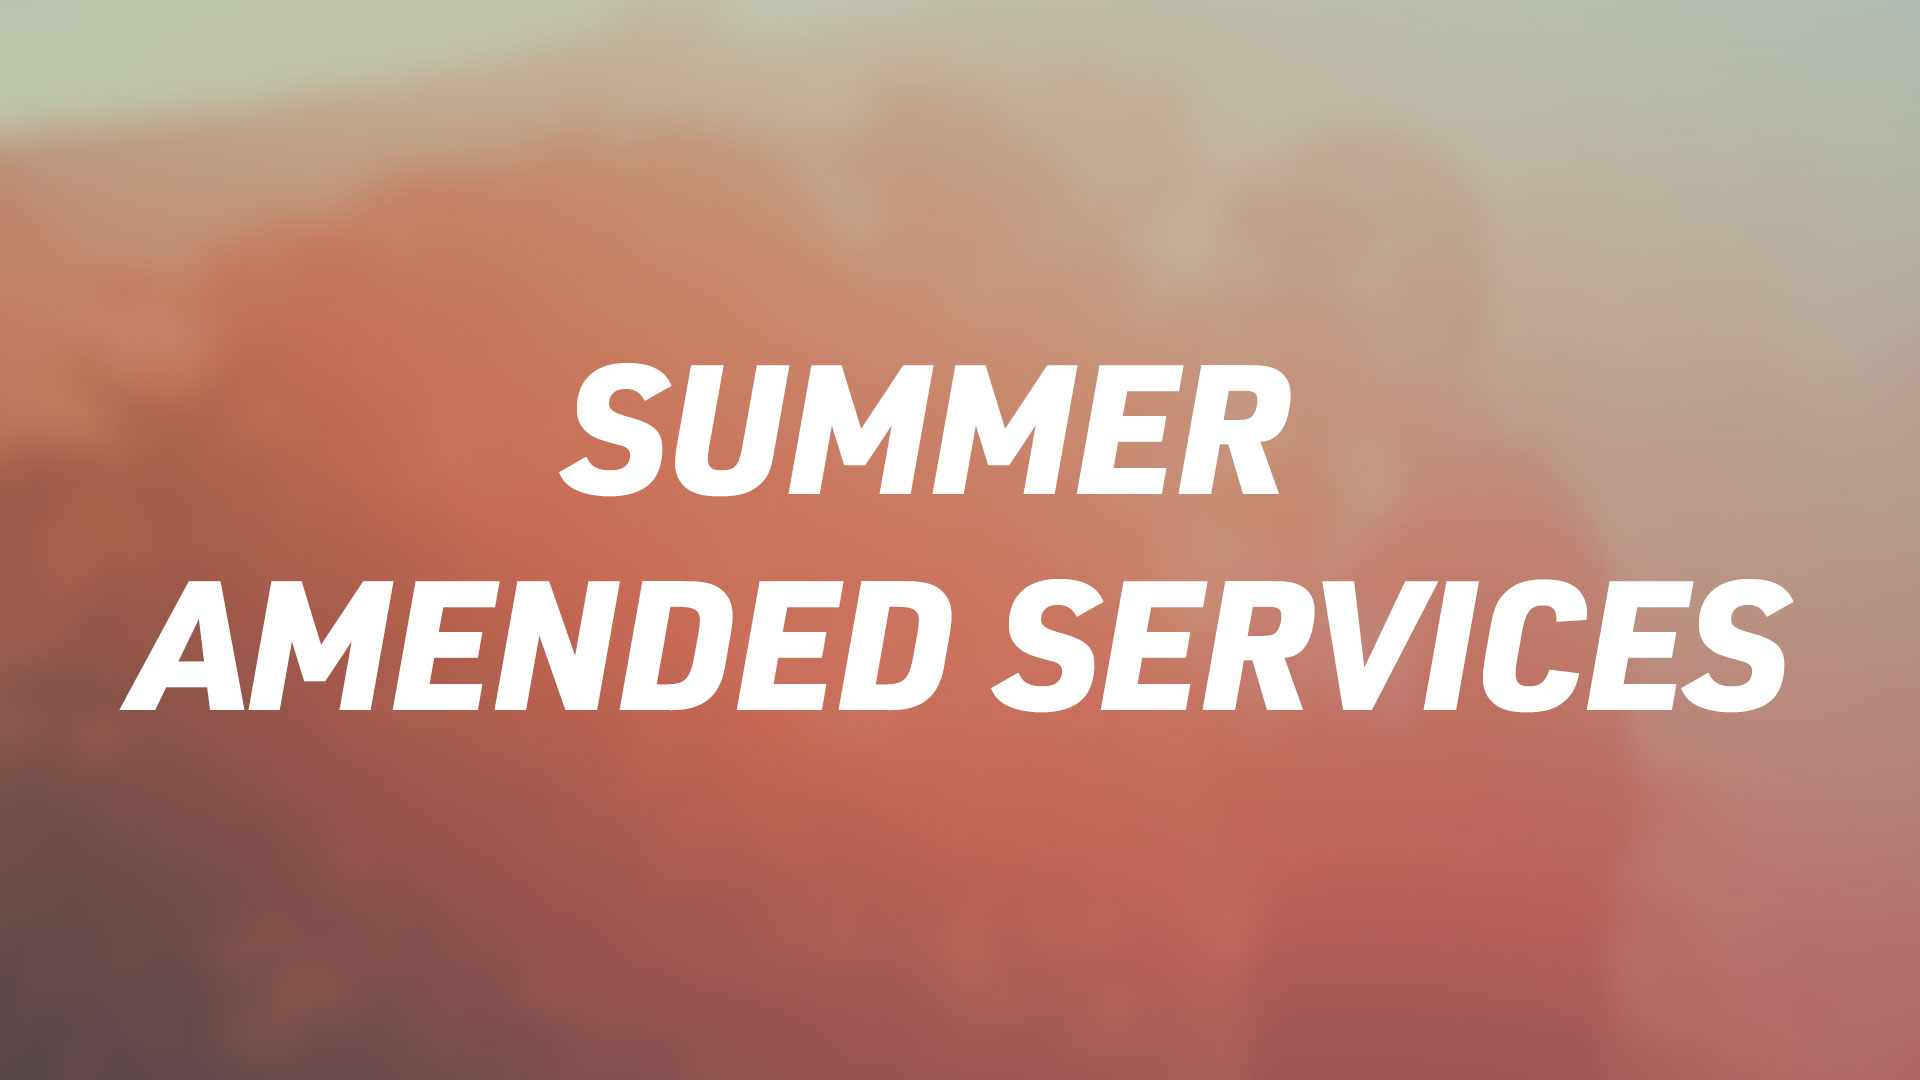 Summer Amended Services